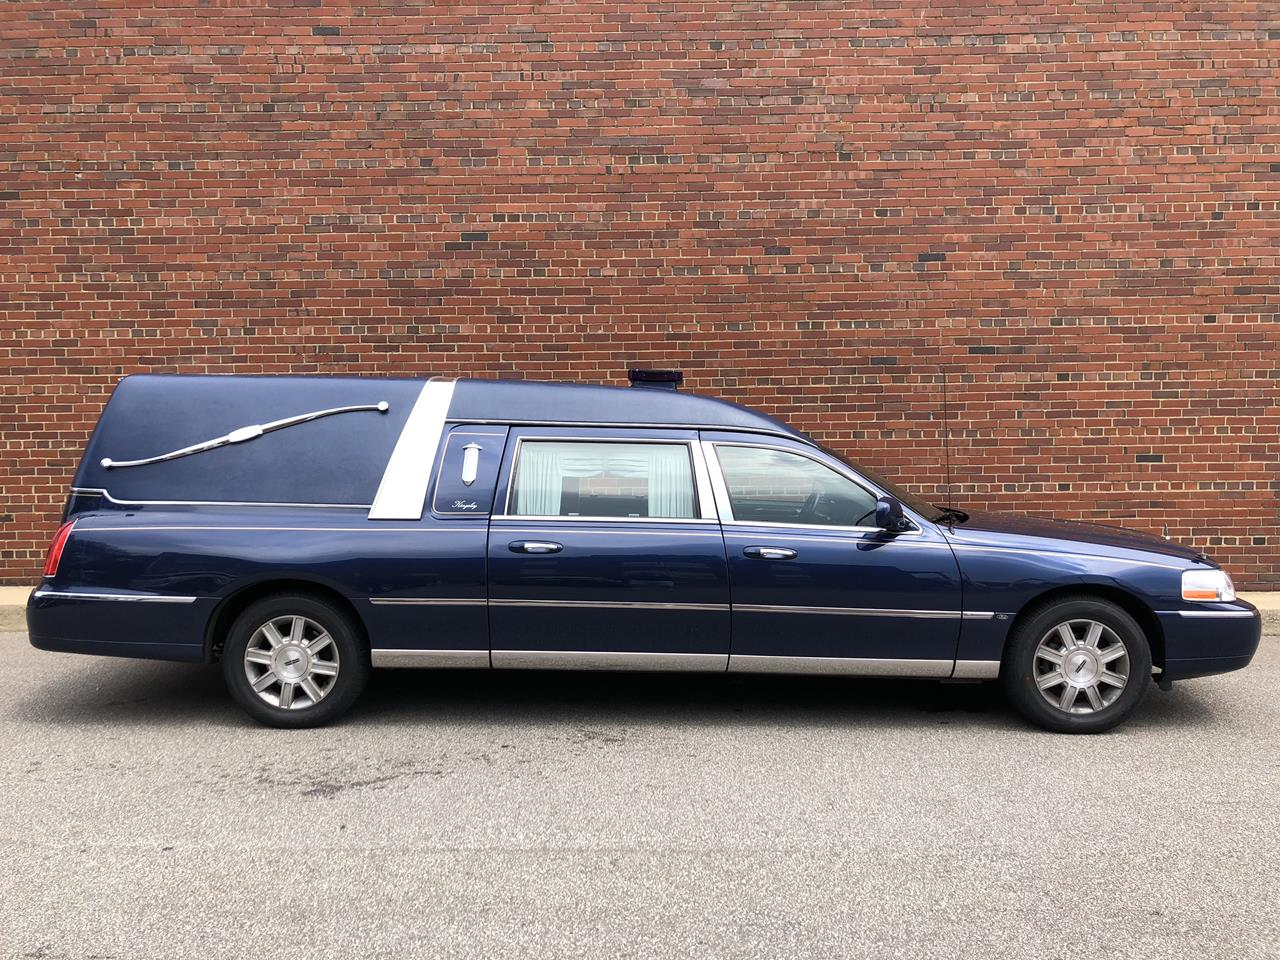 2010 Lincoln Eagle Kingsley Hearse